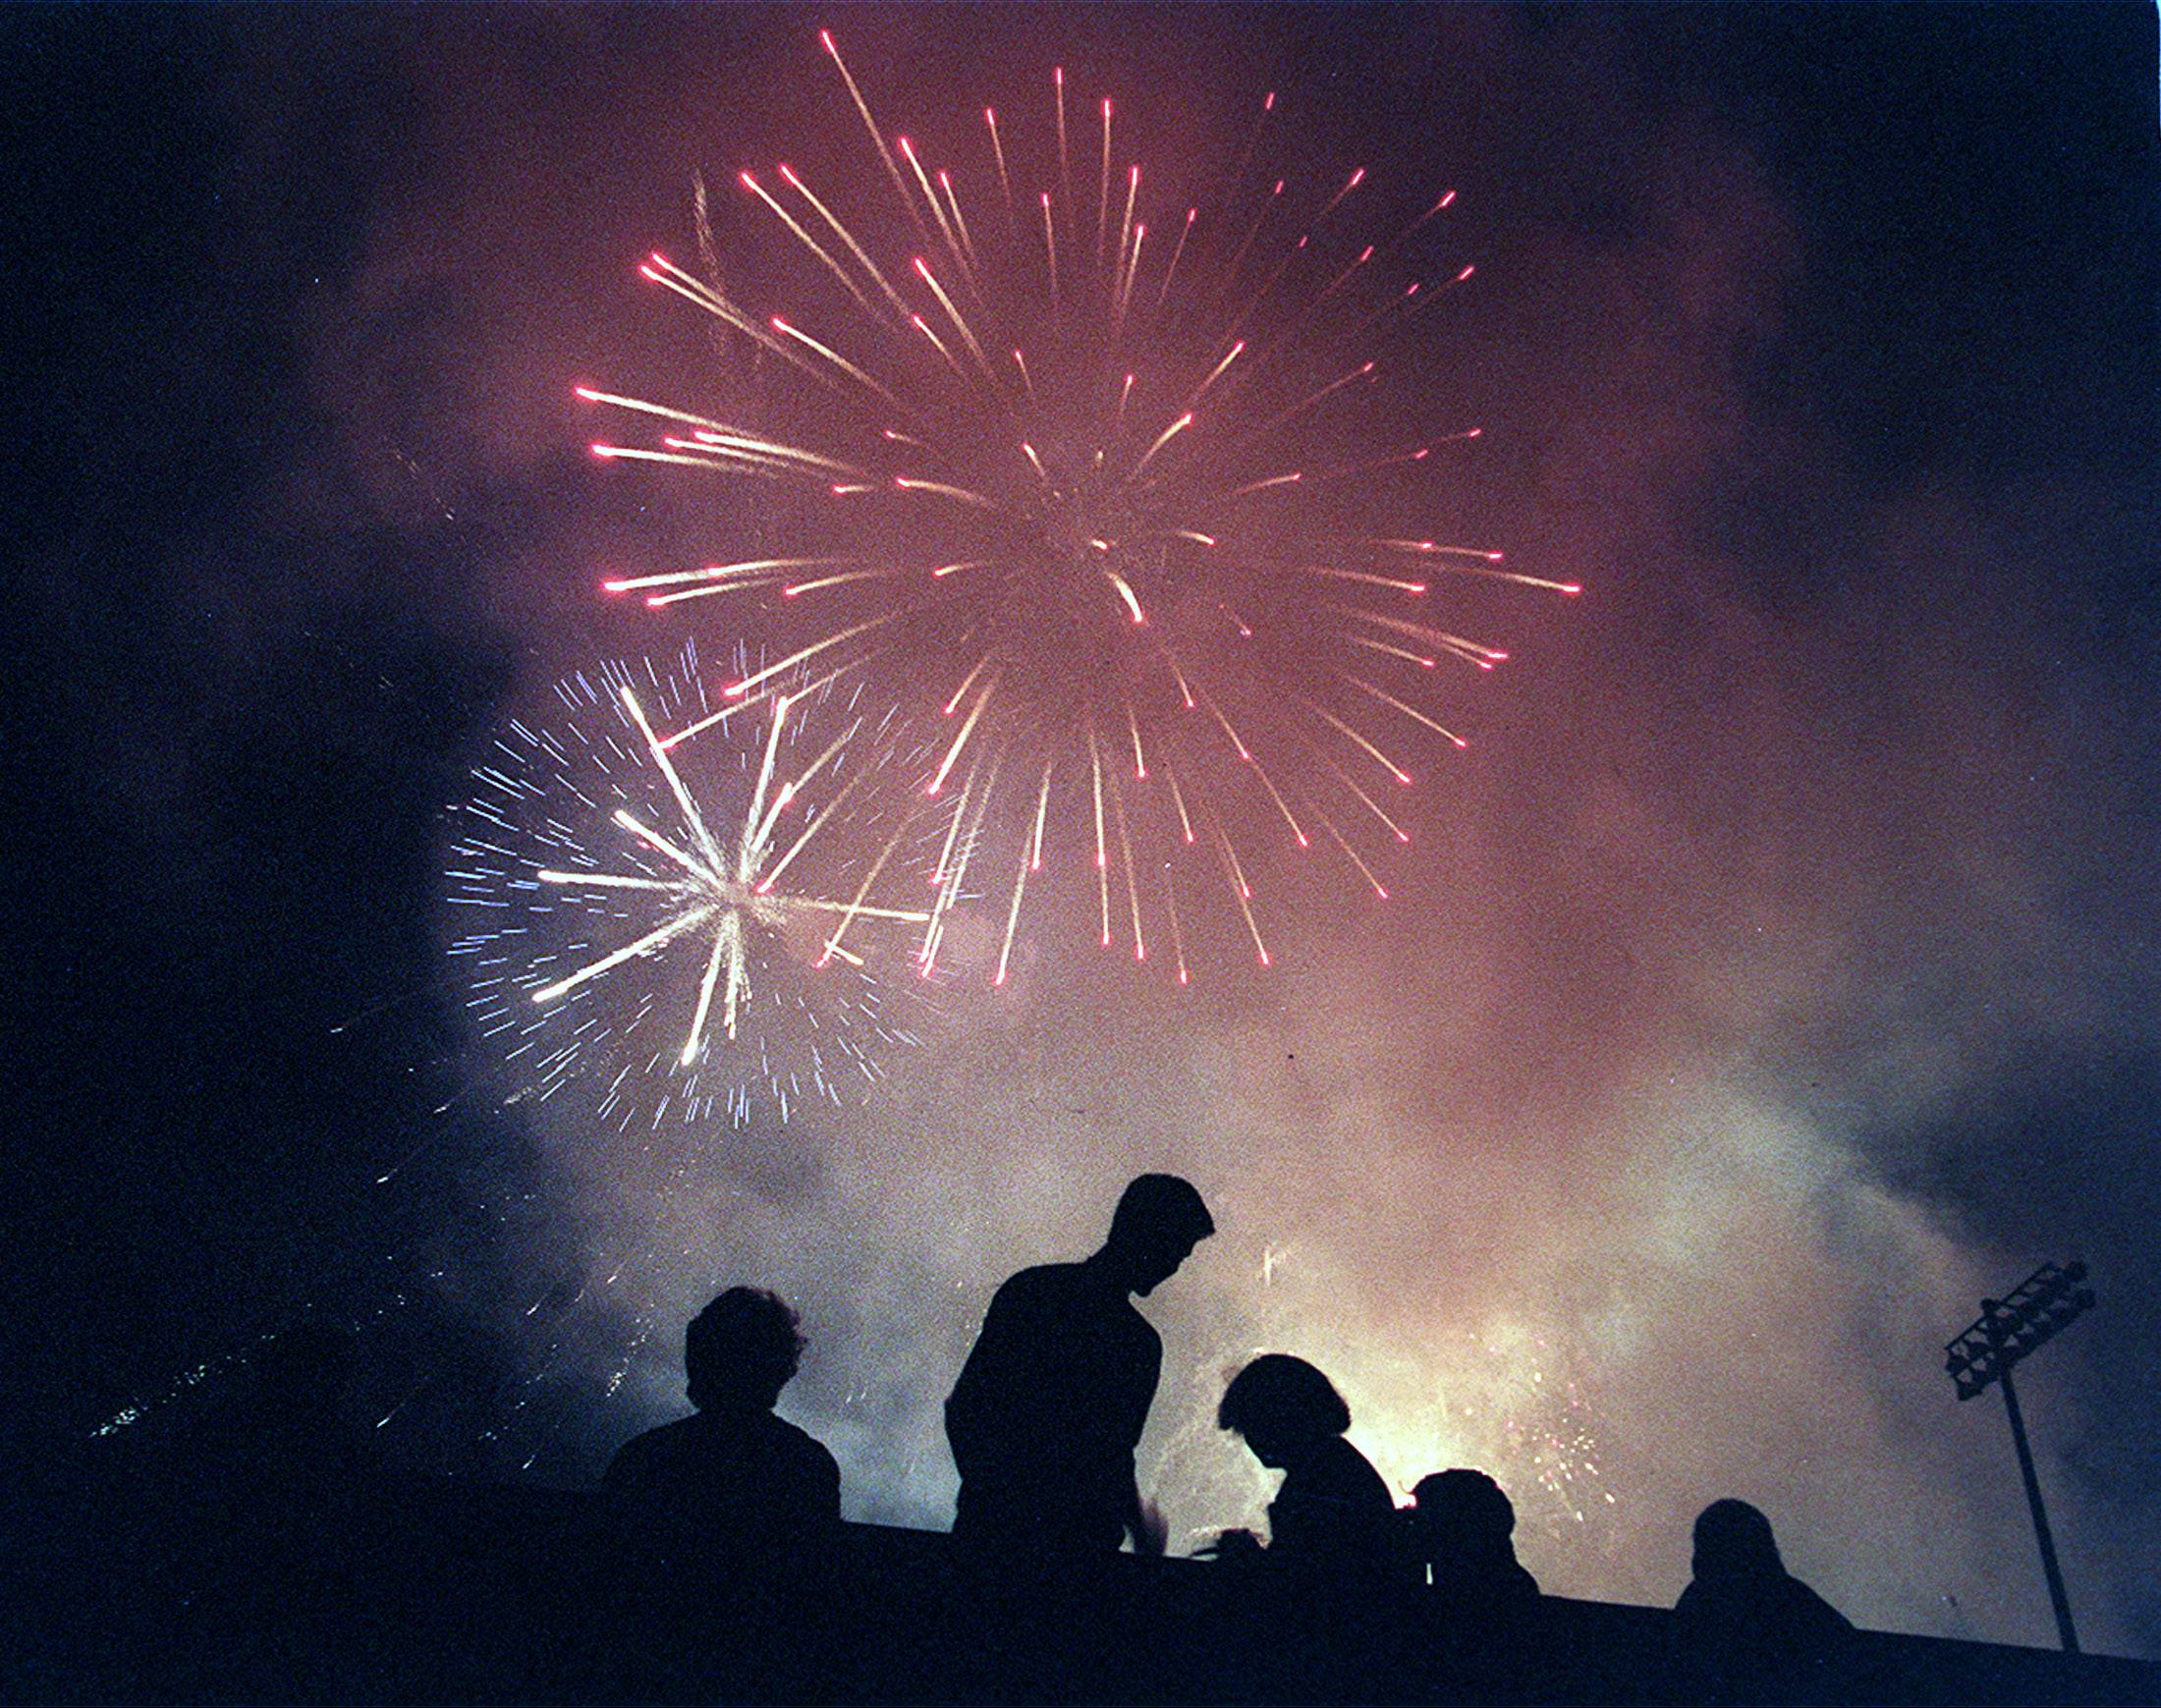 Today is a day to celebrate our nation's independence, as these suburban residents did by watching Fourth of July fireworks in Libertyville.